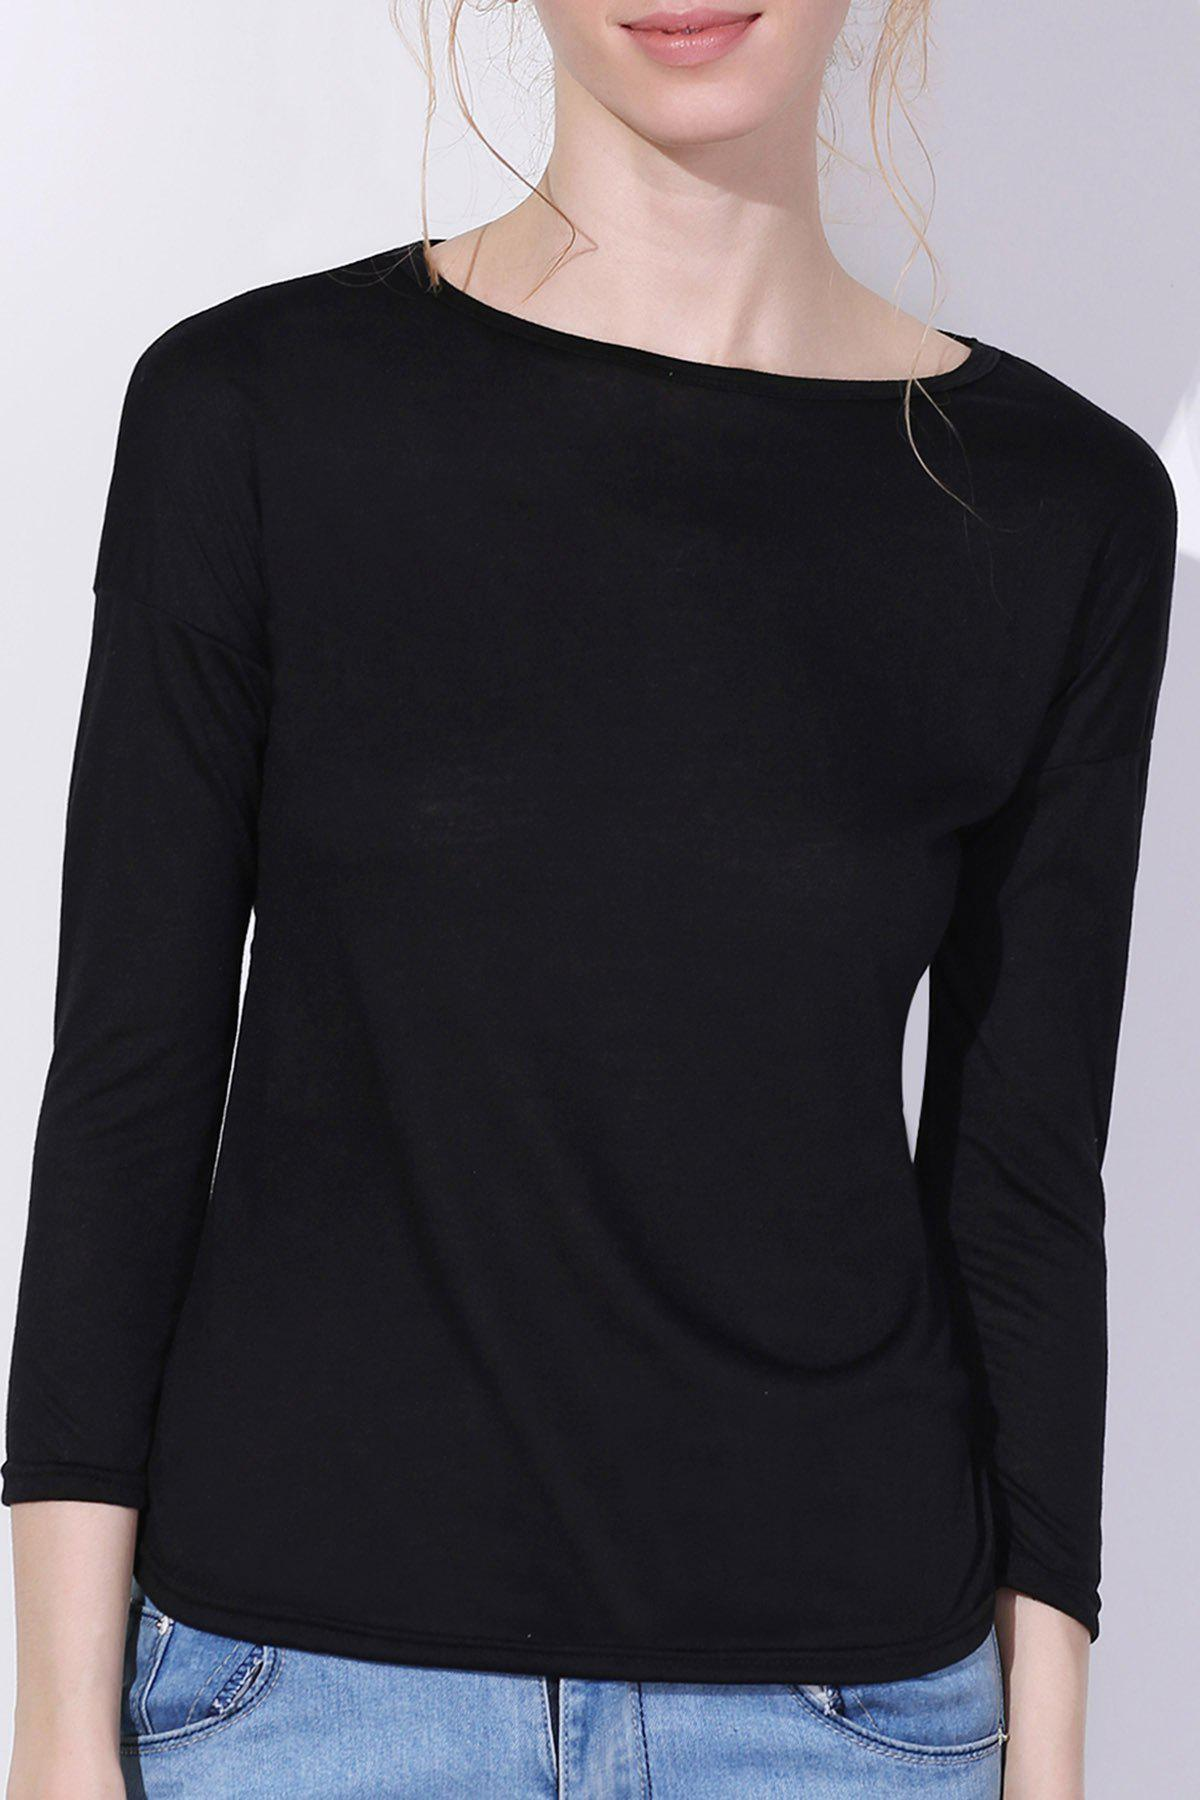 Charming Scoop Neck Solid Color 3/4 Sleeve T-Shirt For Women - BLACK S